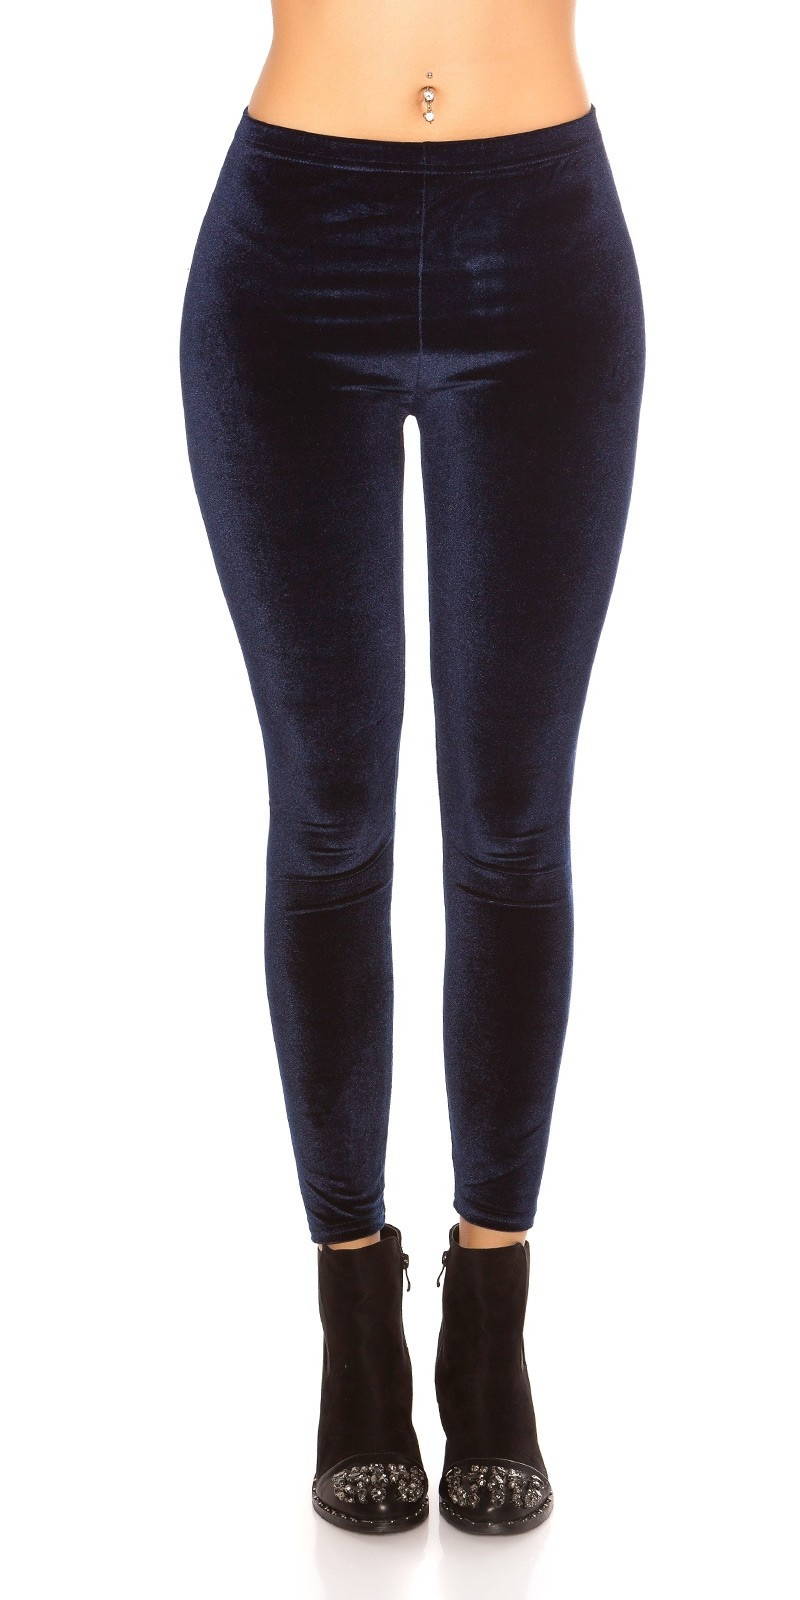 Trendy nicki leggins blauw